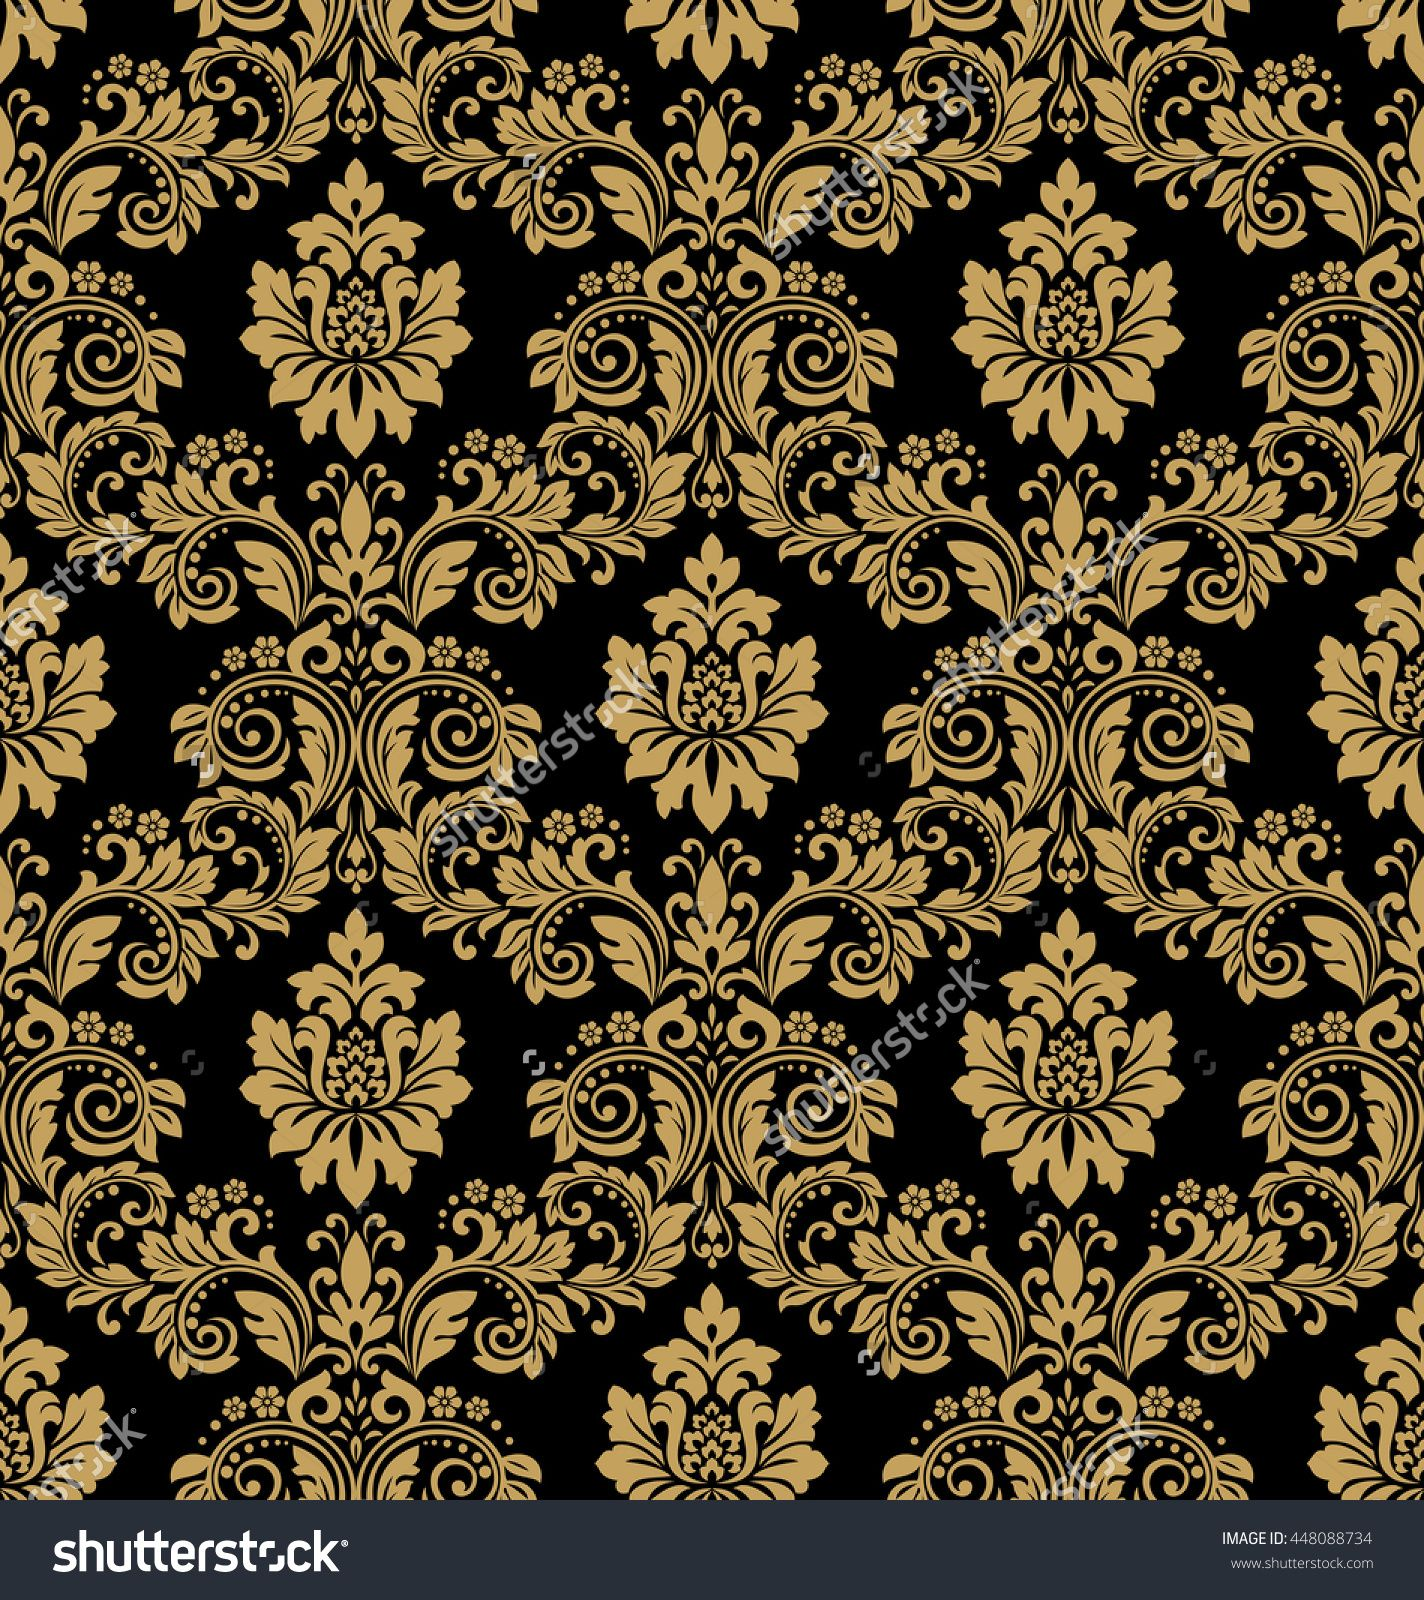 Floral pattern wallpaper baroque damask seamless vector for Wallpaper pattern